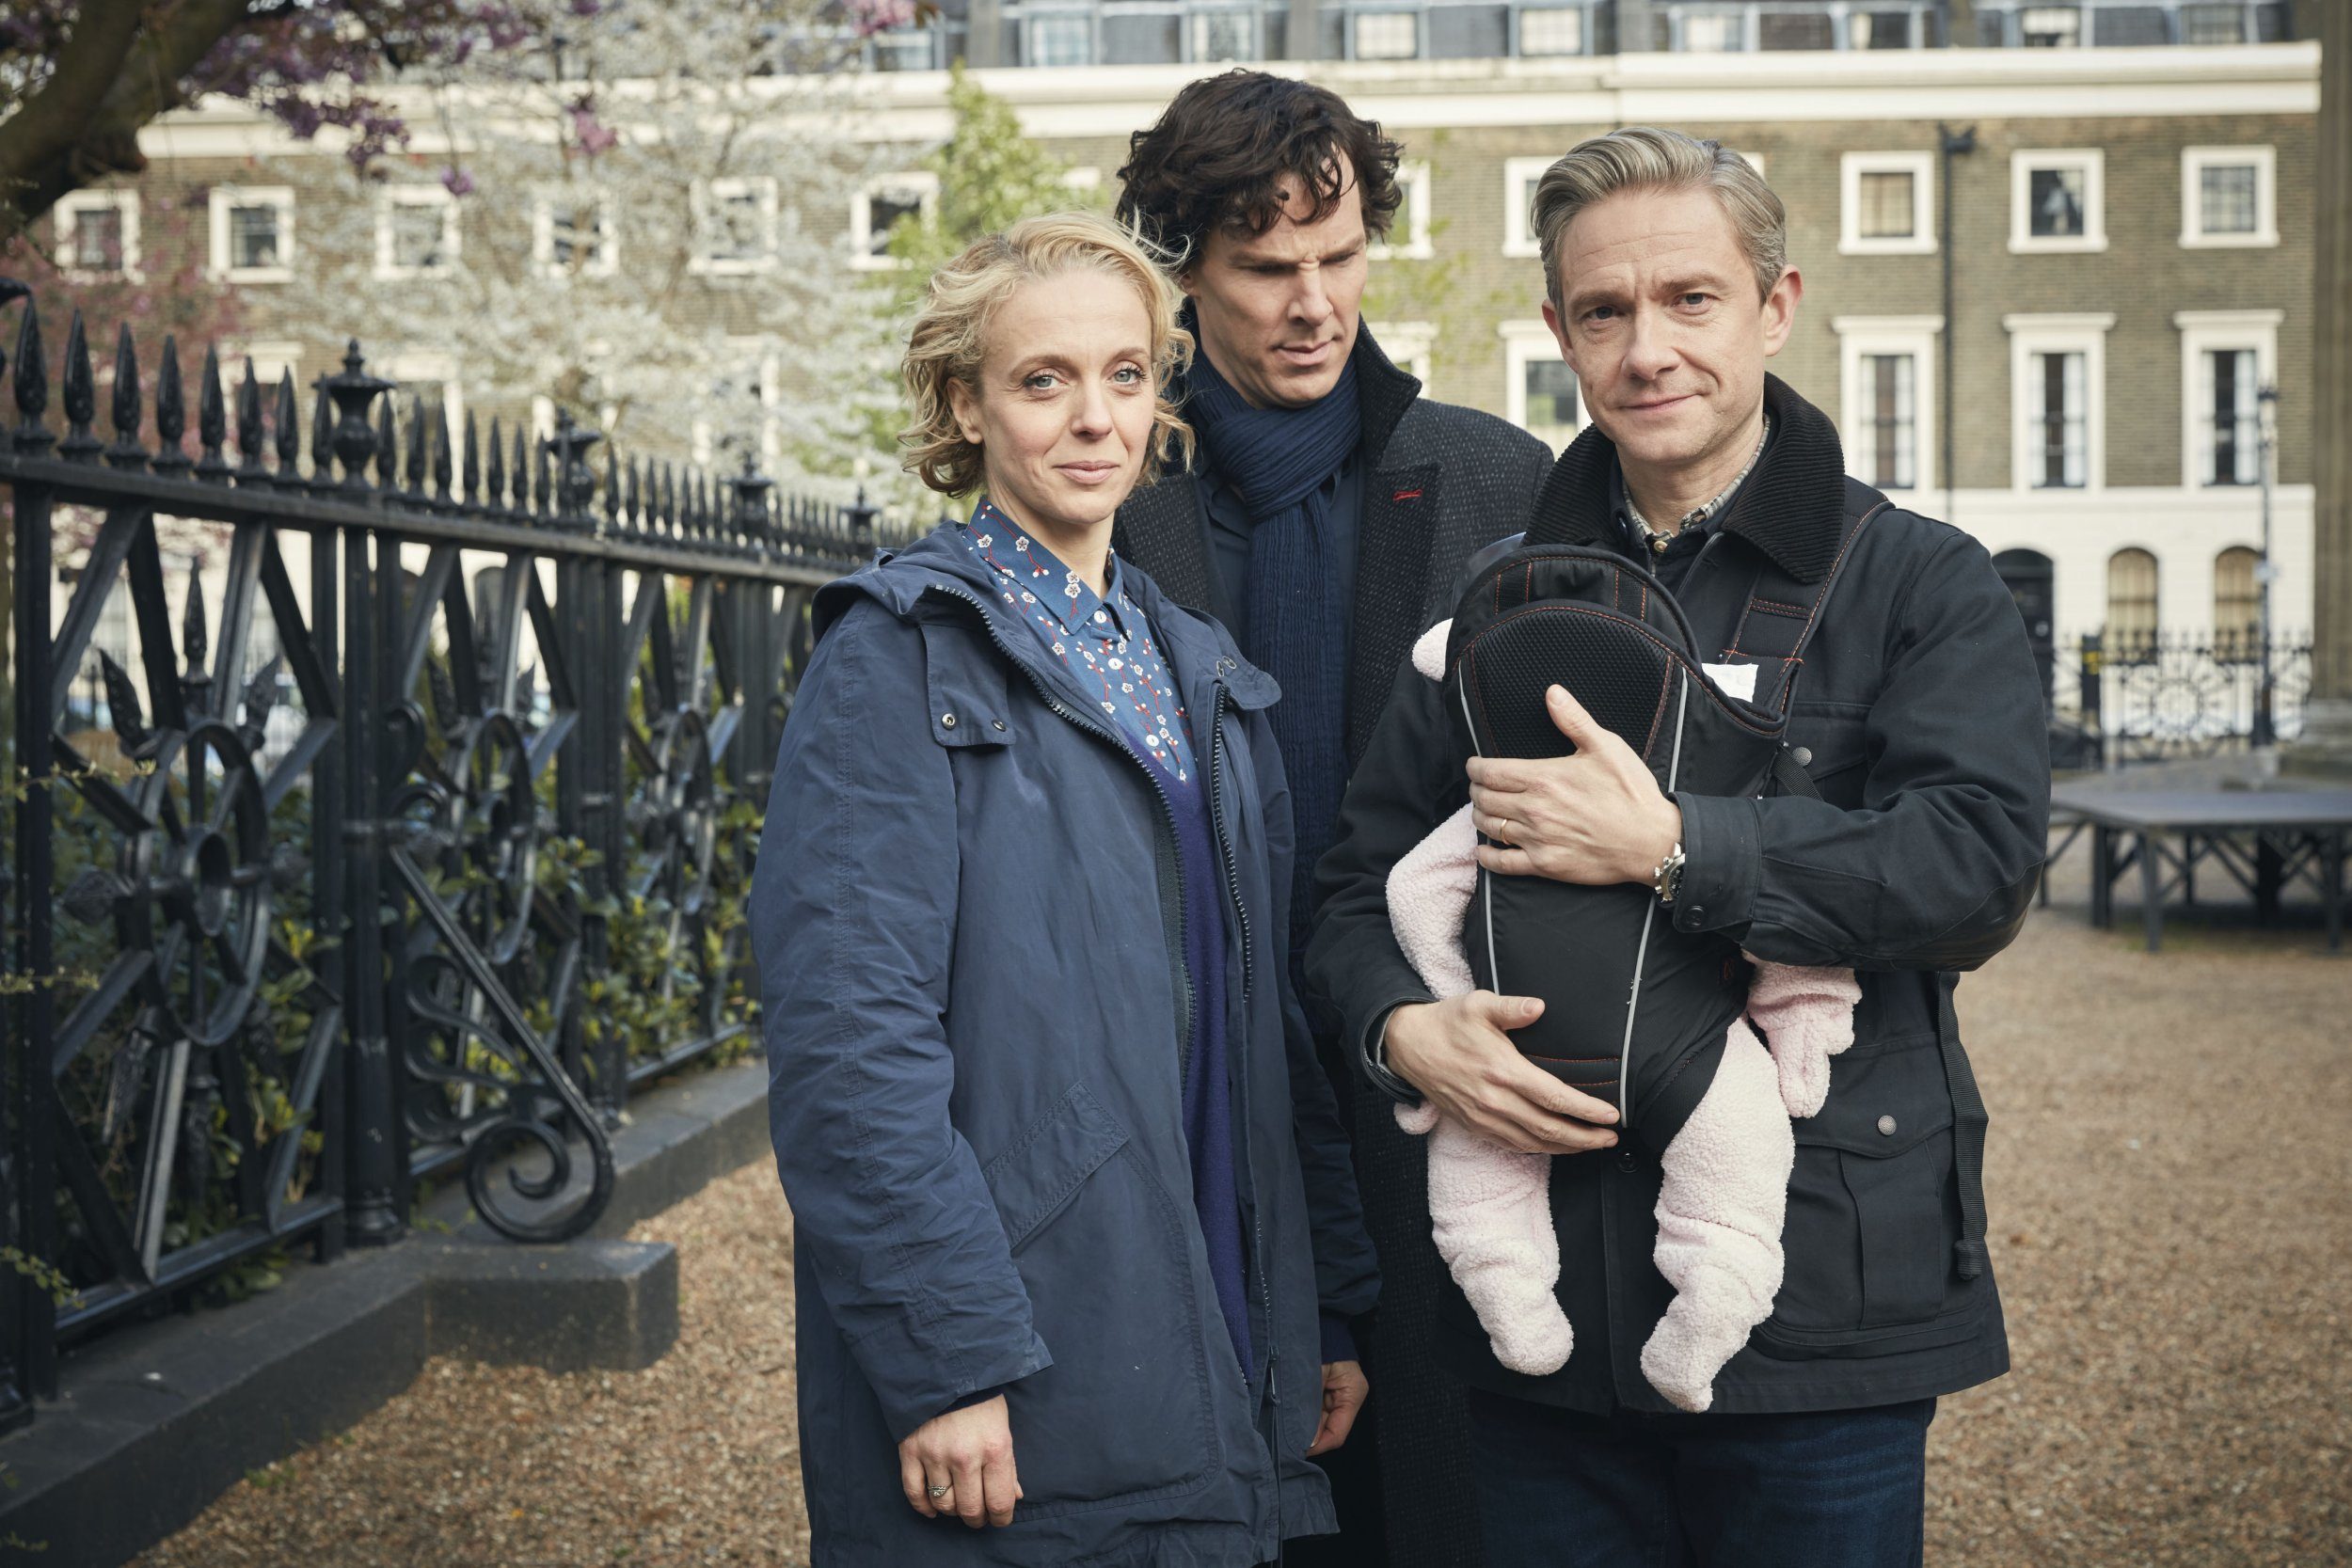 Mark Gatiss and Steven Moffat tease whether Sherlock series 4 is the last